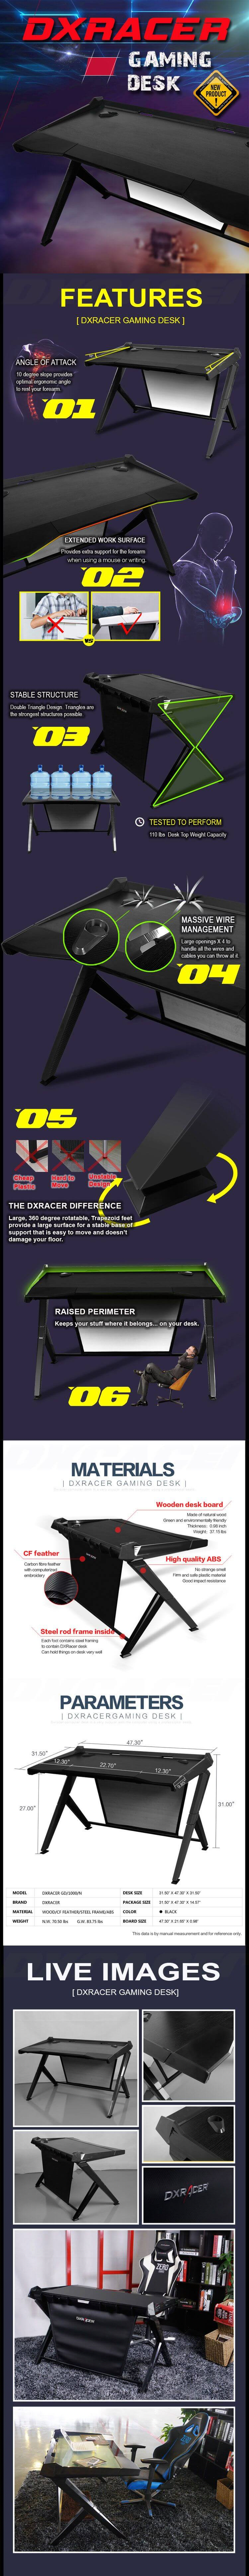 DXRacer Gaming Desk evolved for the ultimate gamer